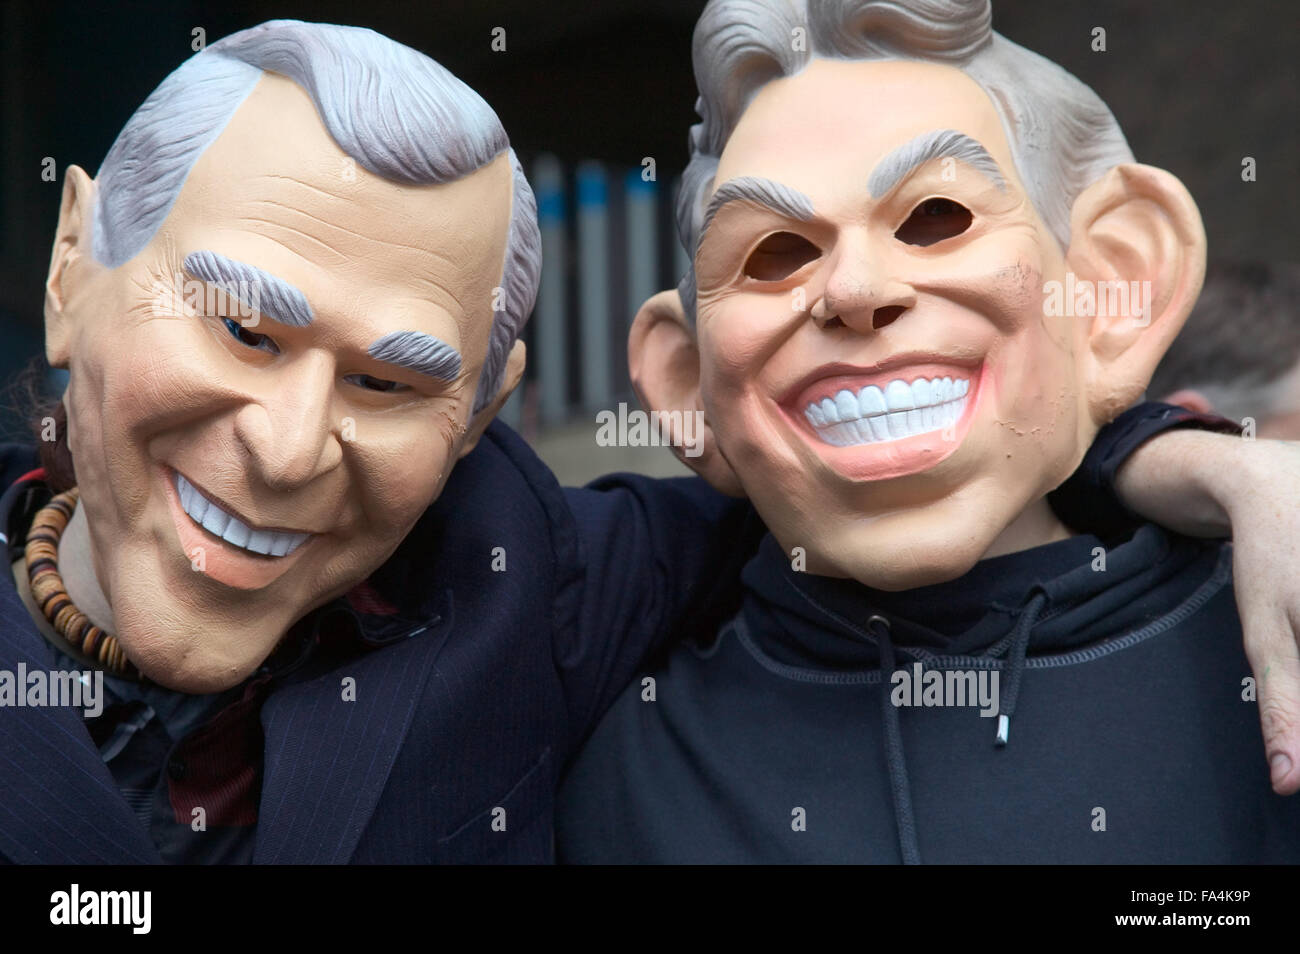 Friends of the Earth supporters wearing masks representing political leaders during protest, - Stock Image